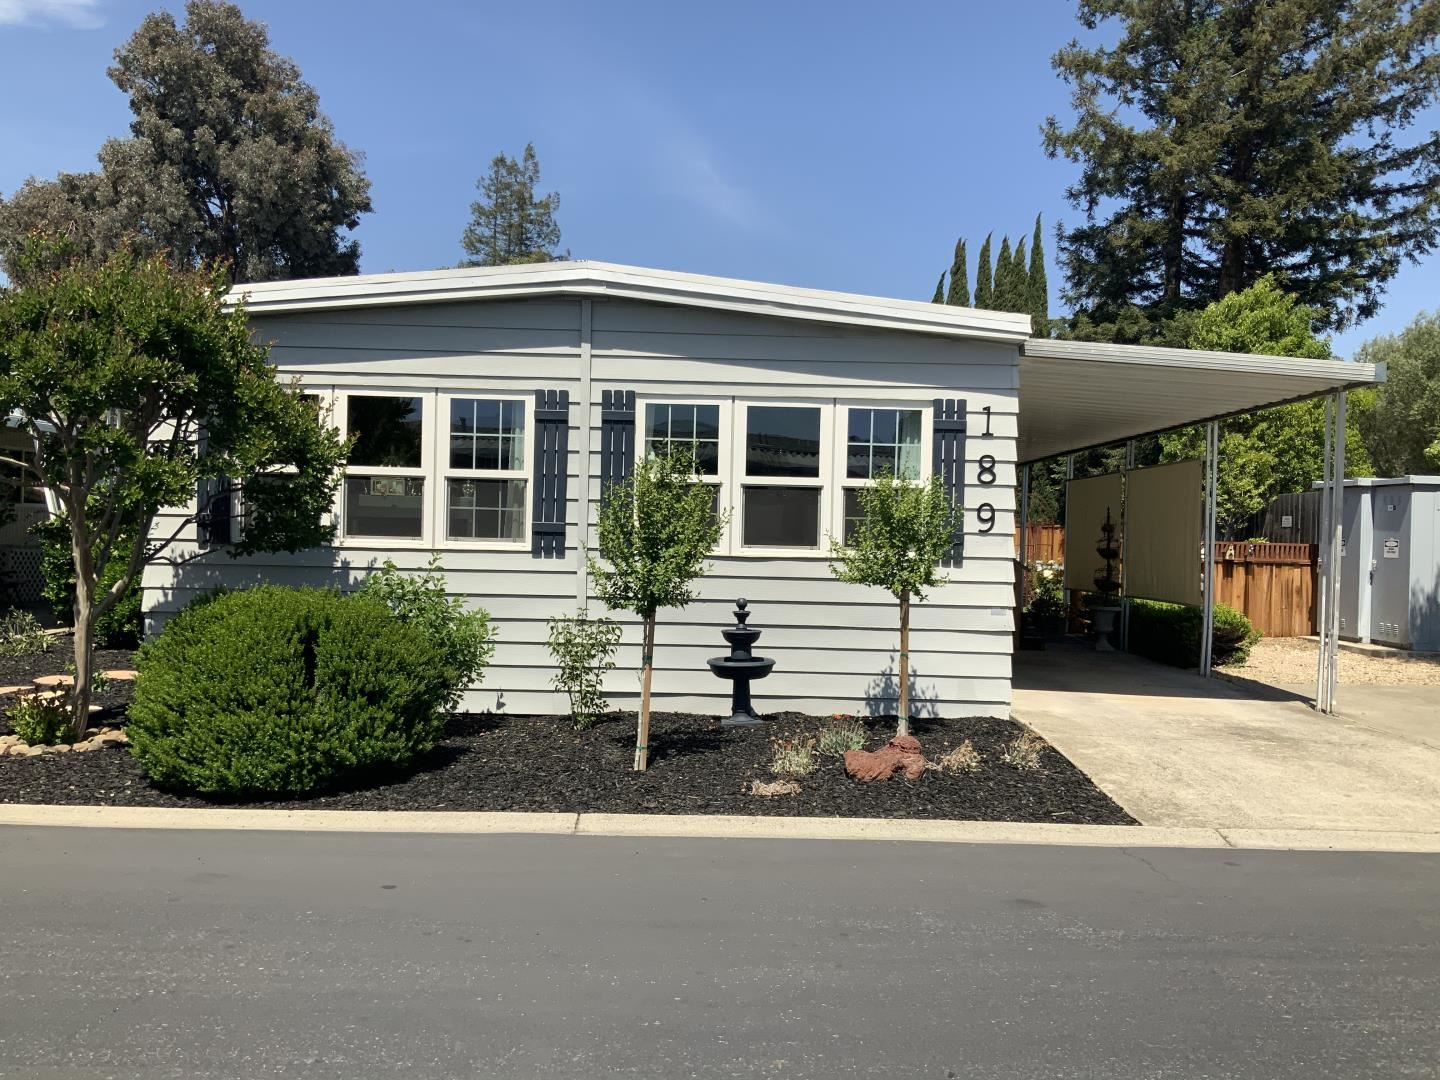 189 Walnut DR 189, Morgan Hill, CA 95037 - #: ML81797306